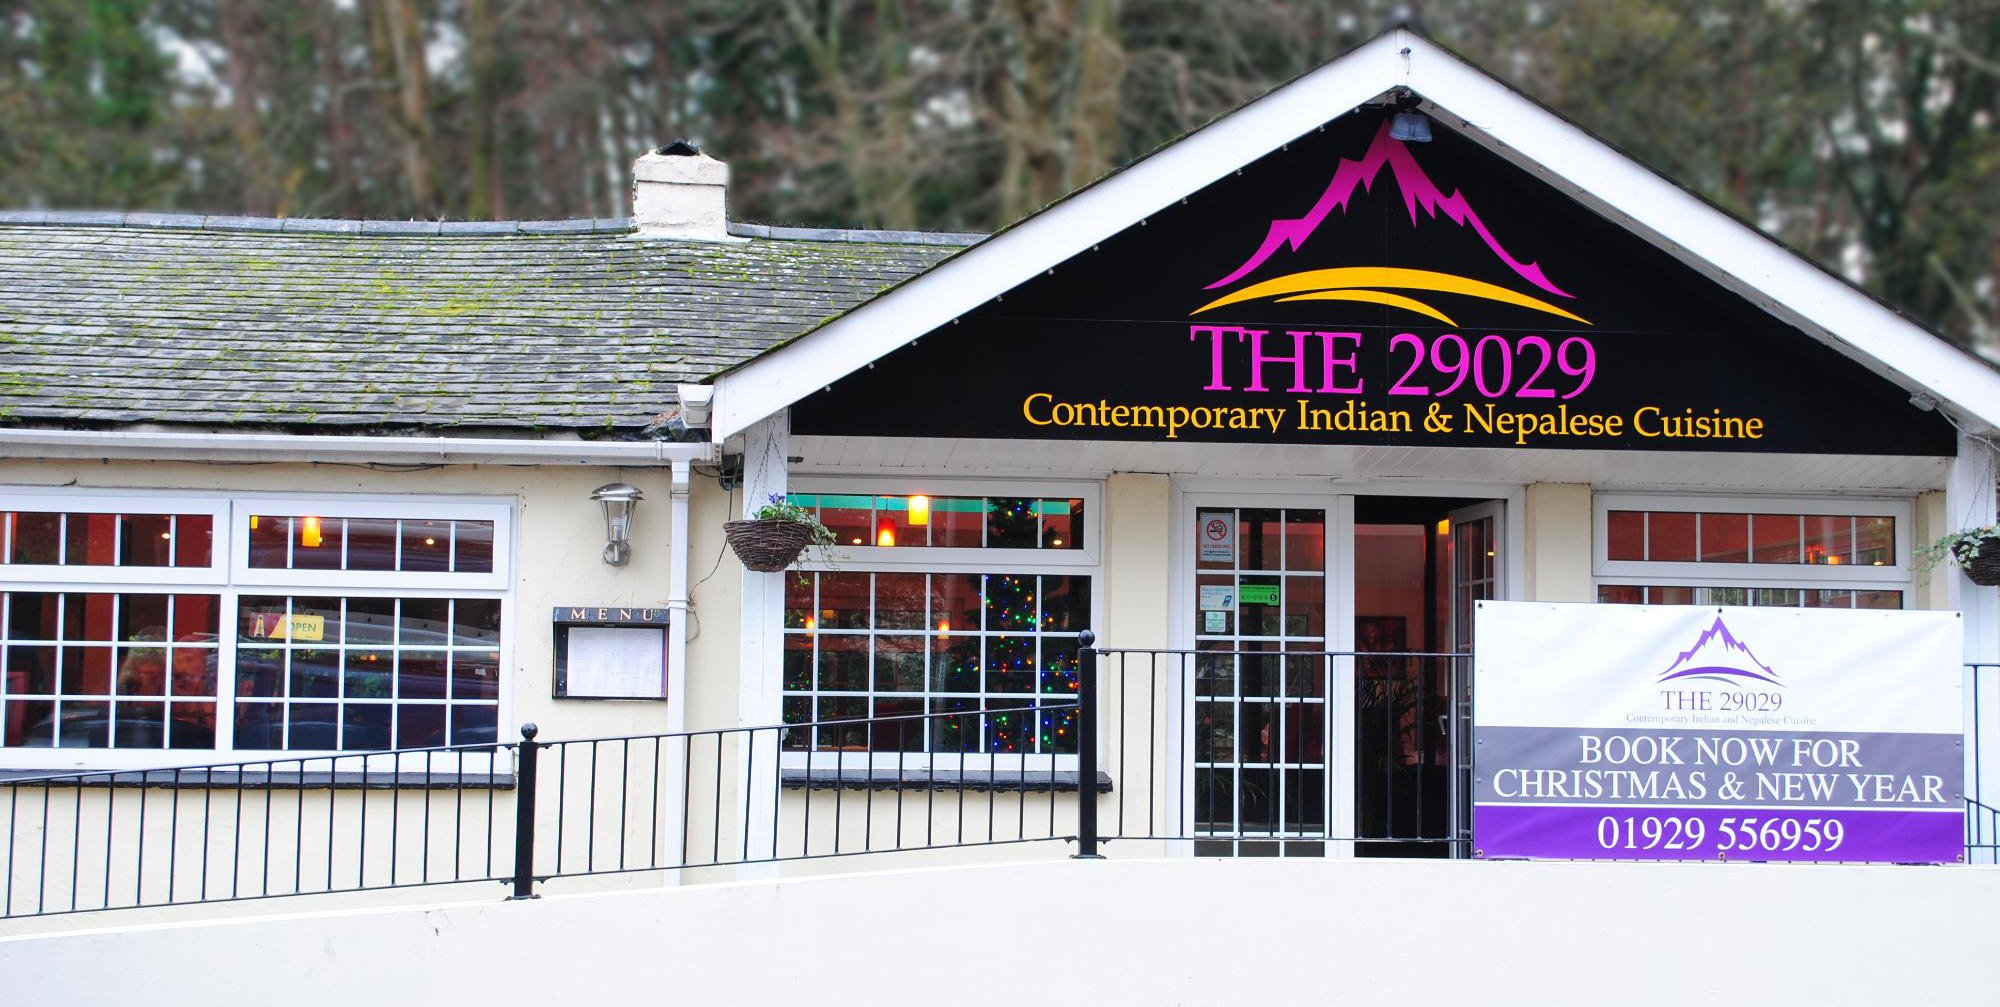 The 29029 Restaurant Wareham